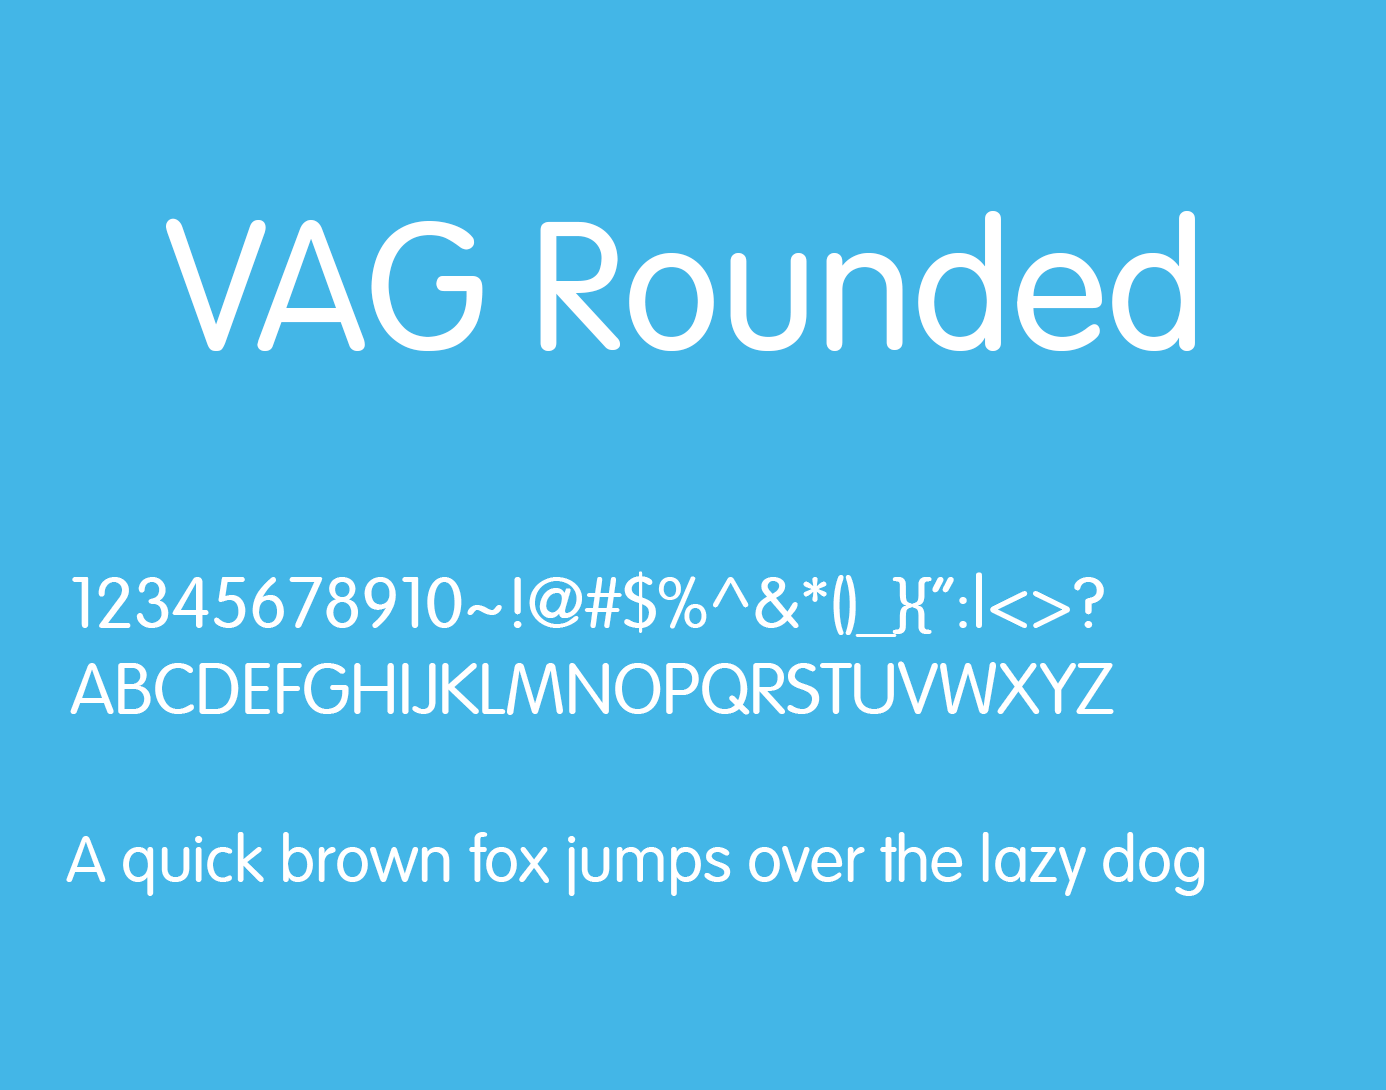 vag-rounded-1